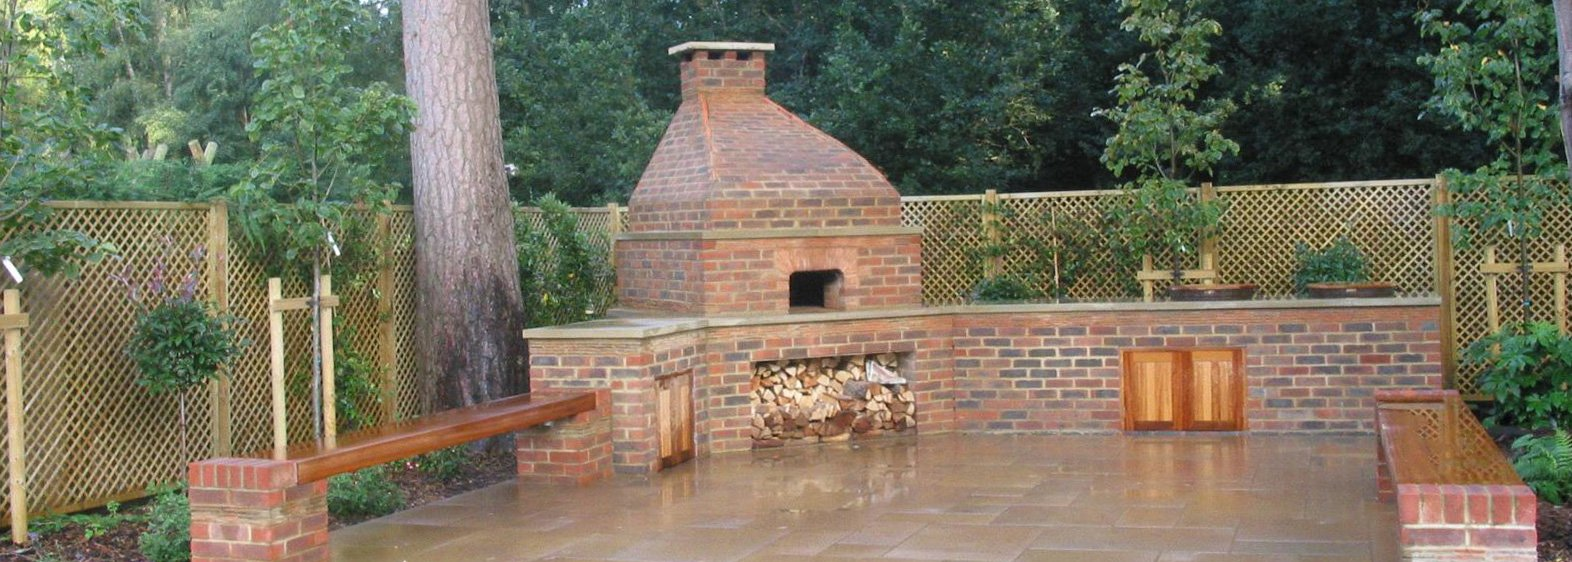 Bespoke brick Oven, outdoor kitchen Buckinghamshire